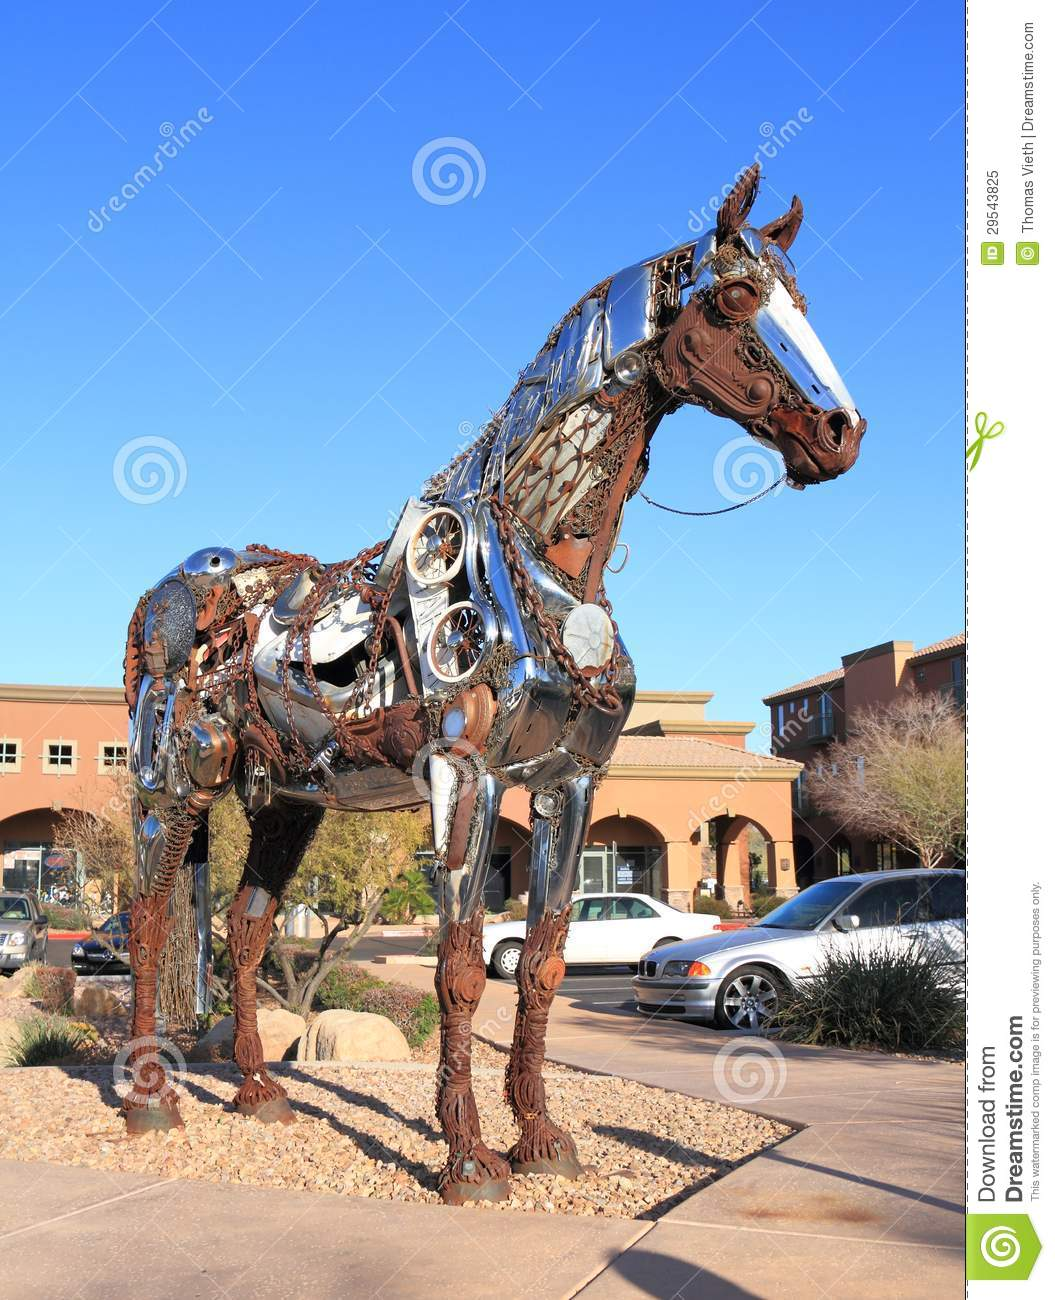 Usa Arizona Fountain Hills Scrap Metal Art Or Recycled Horse Editorial Image Image Of Horse Recycling 29543825